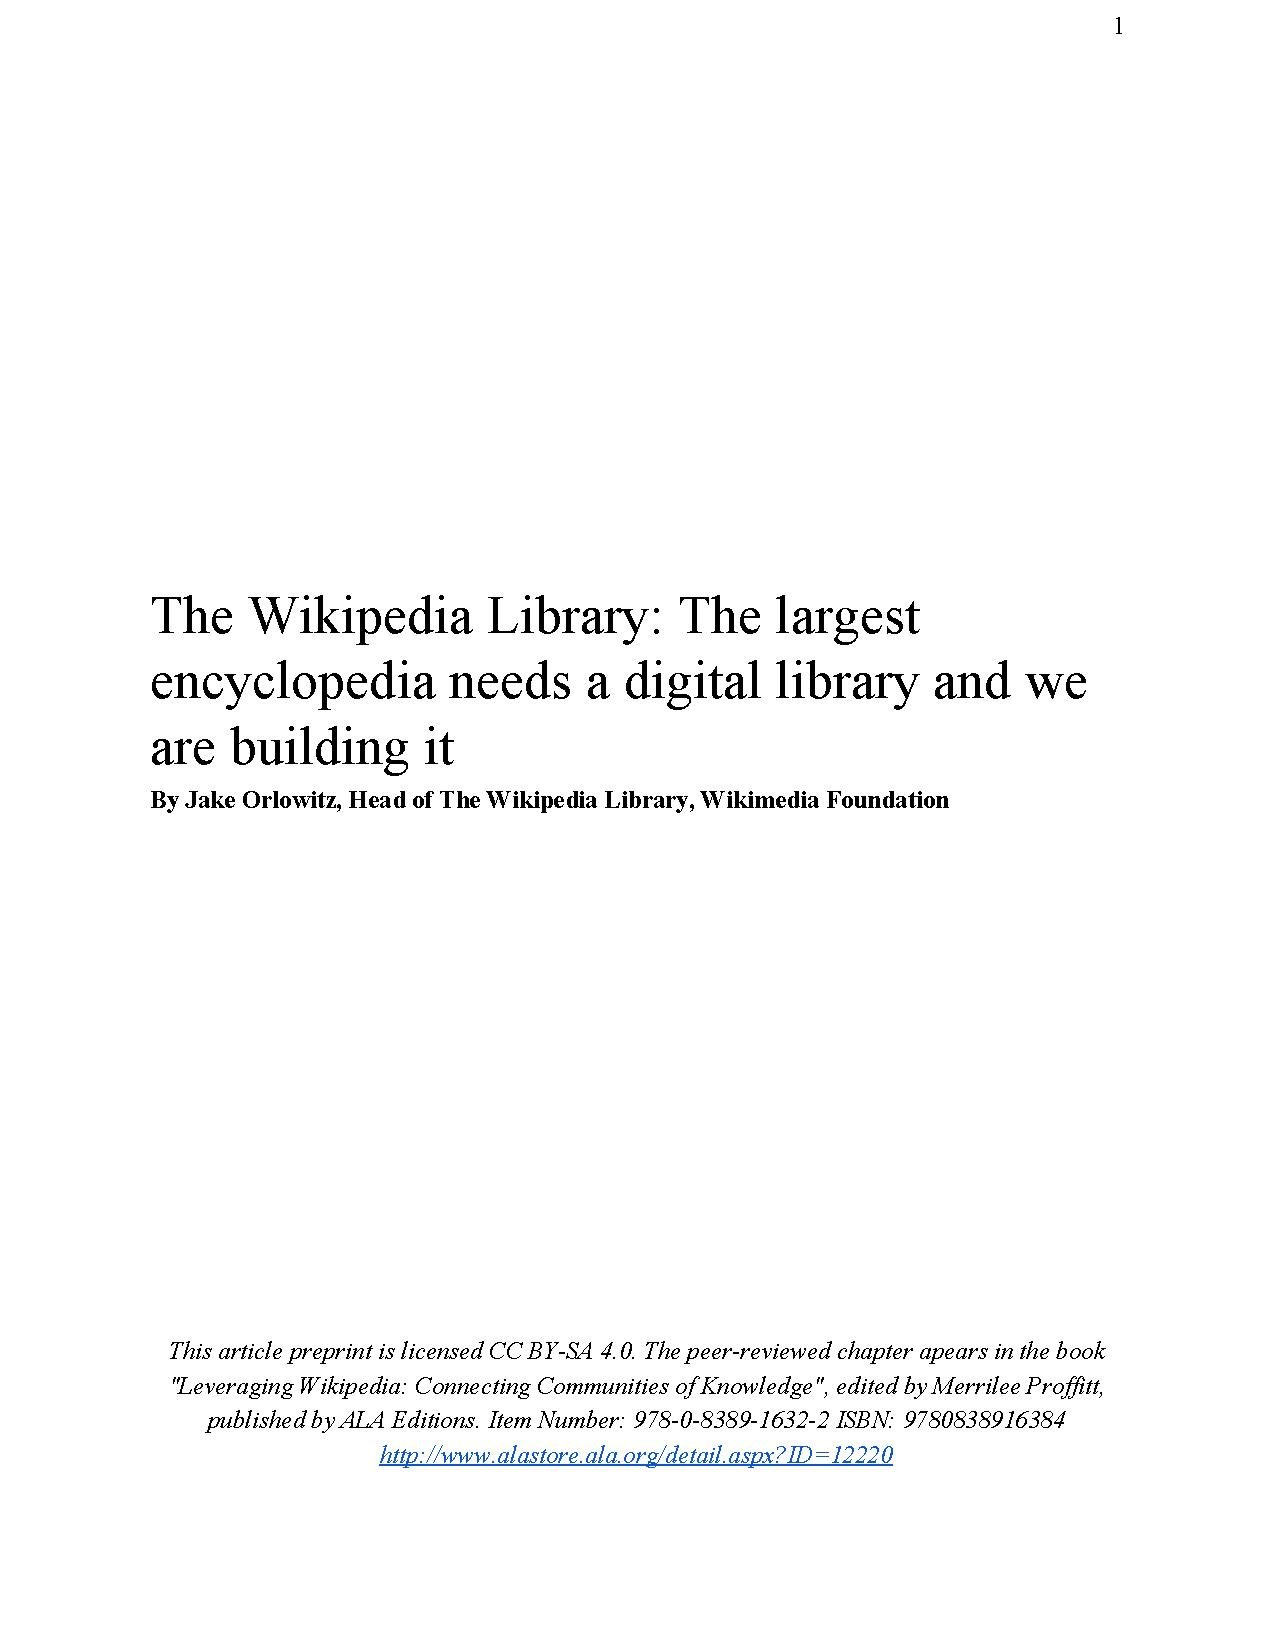 File:The Wikipedia Library-The largest encyclopedia needs a